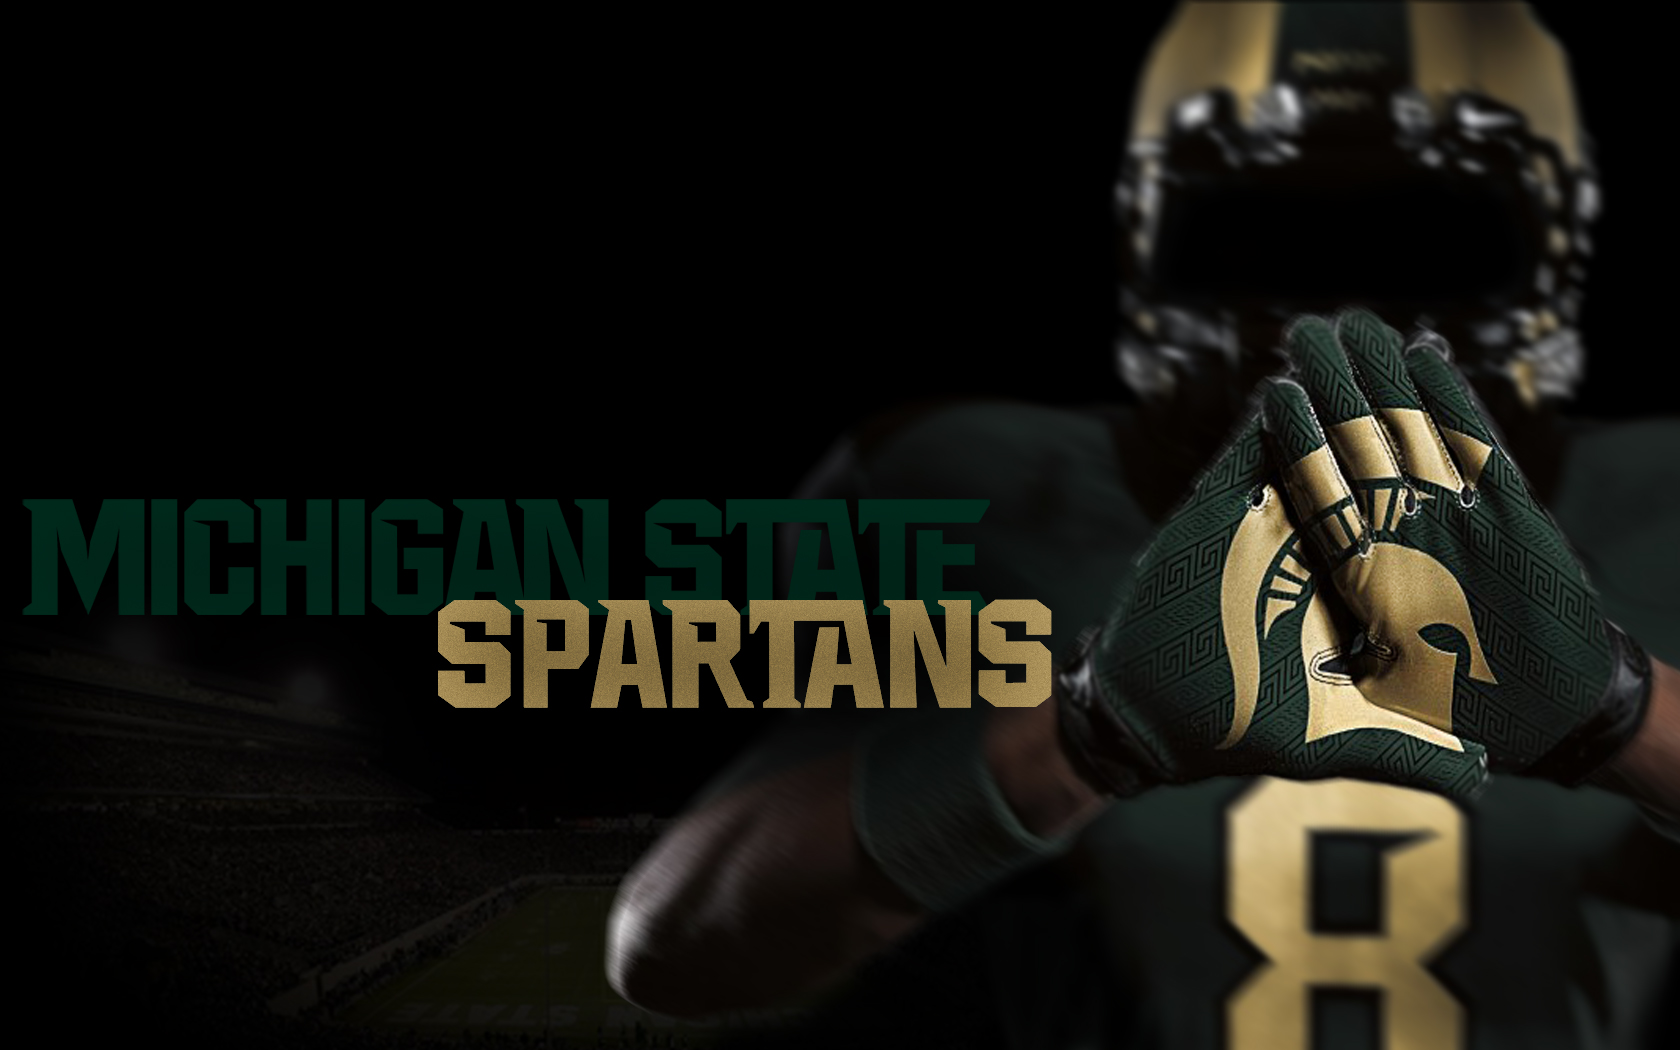 Michigan State Wallpaper 1920x1080 MSU Wallpaper by eskipapercom 1680x1050